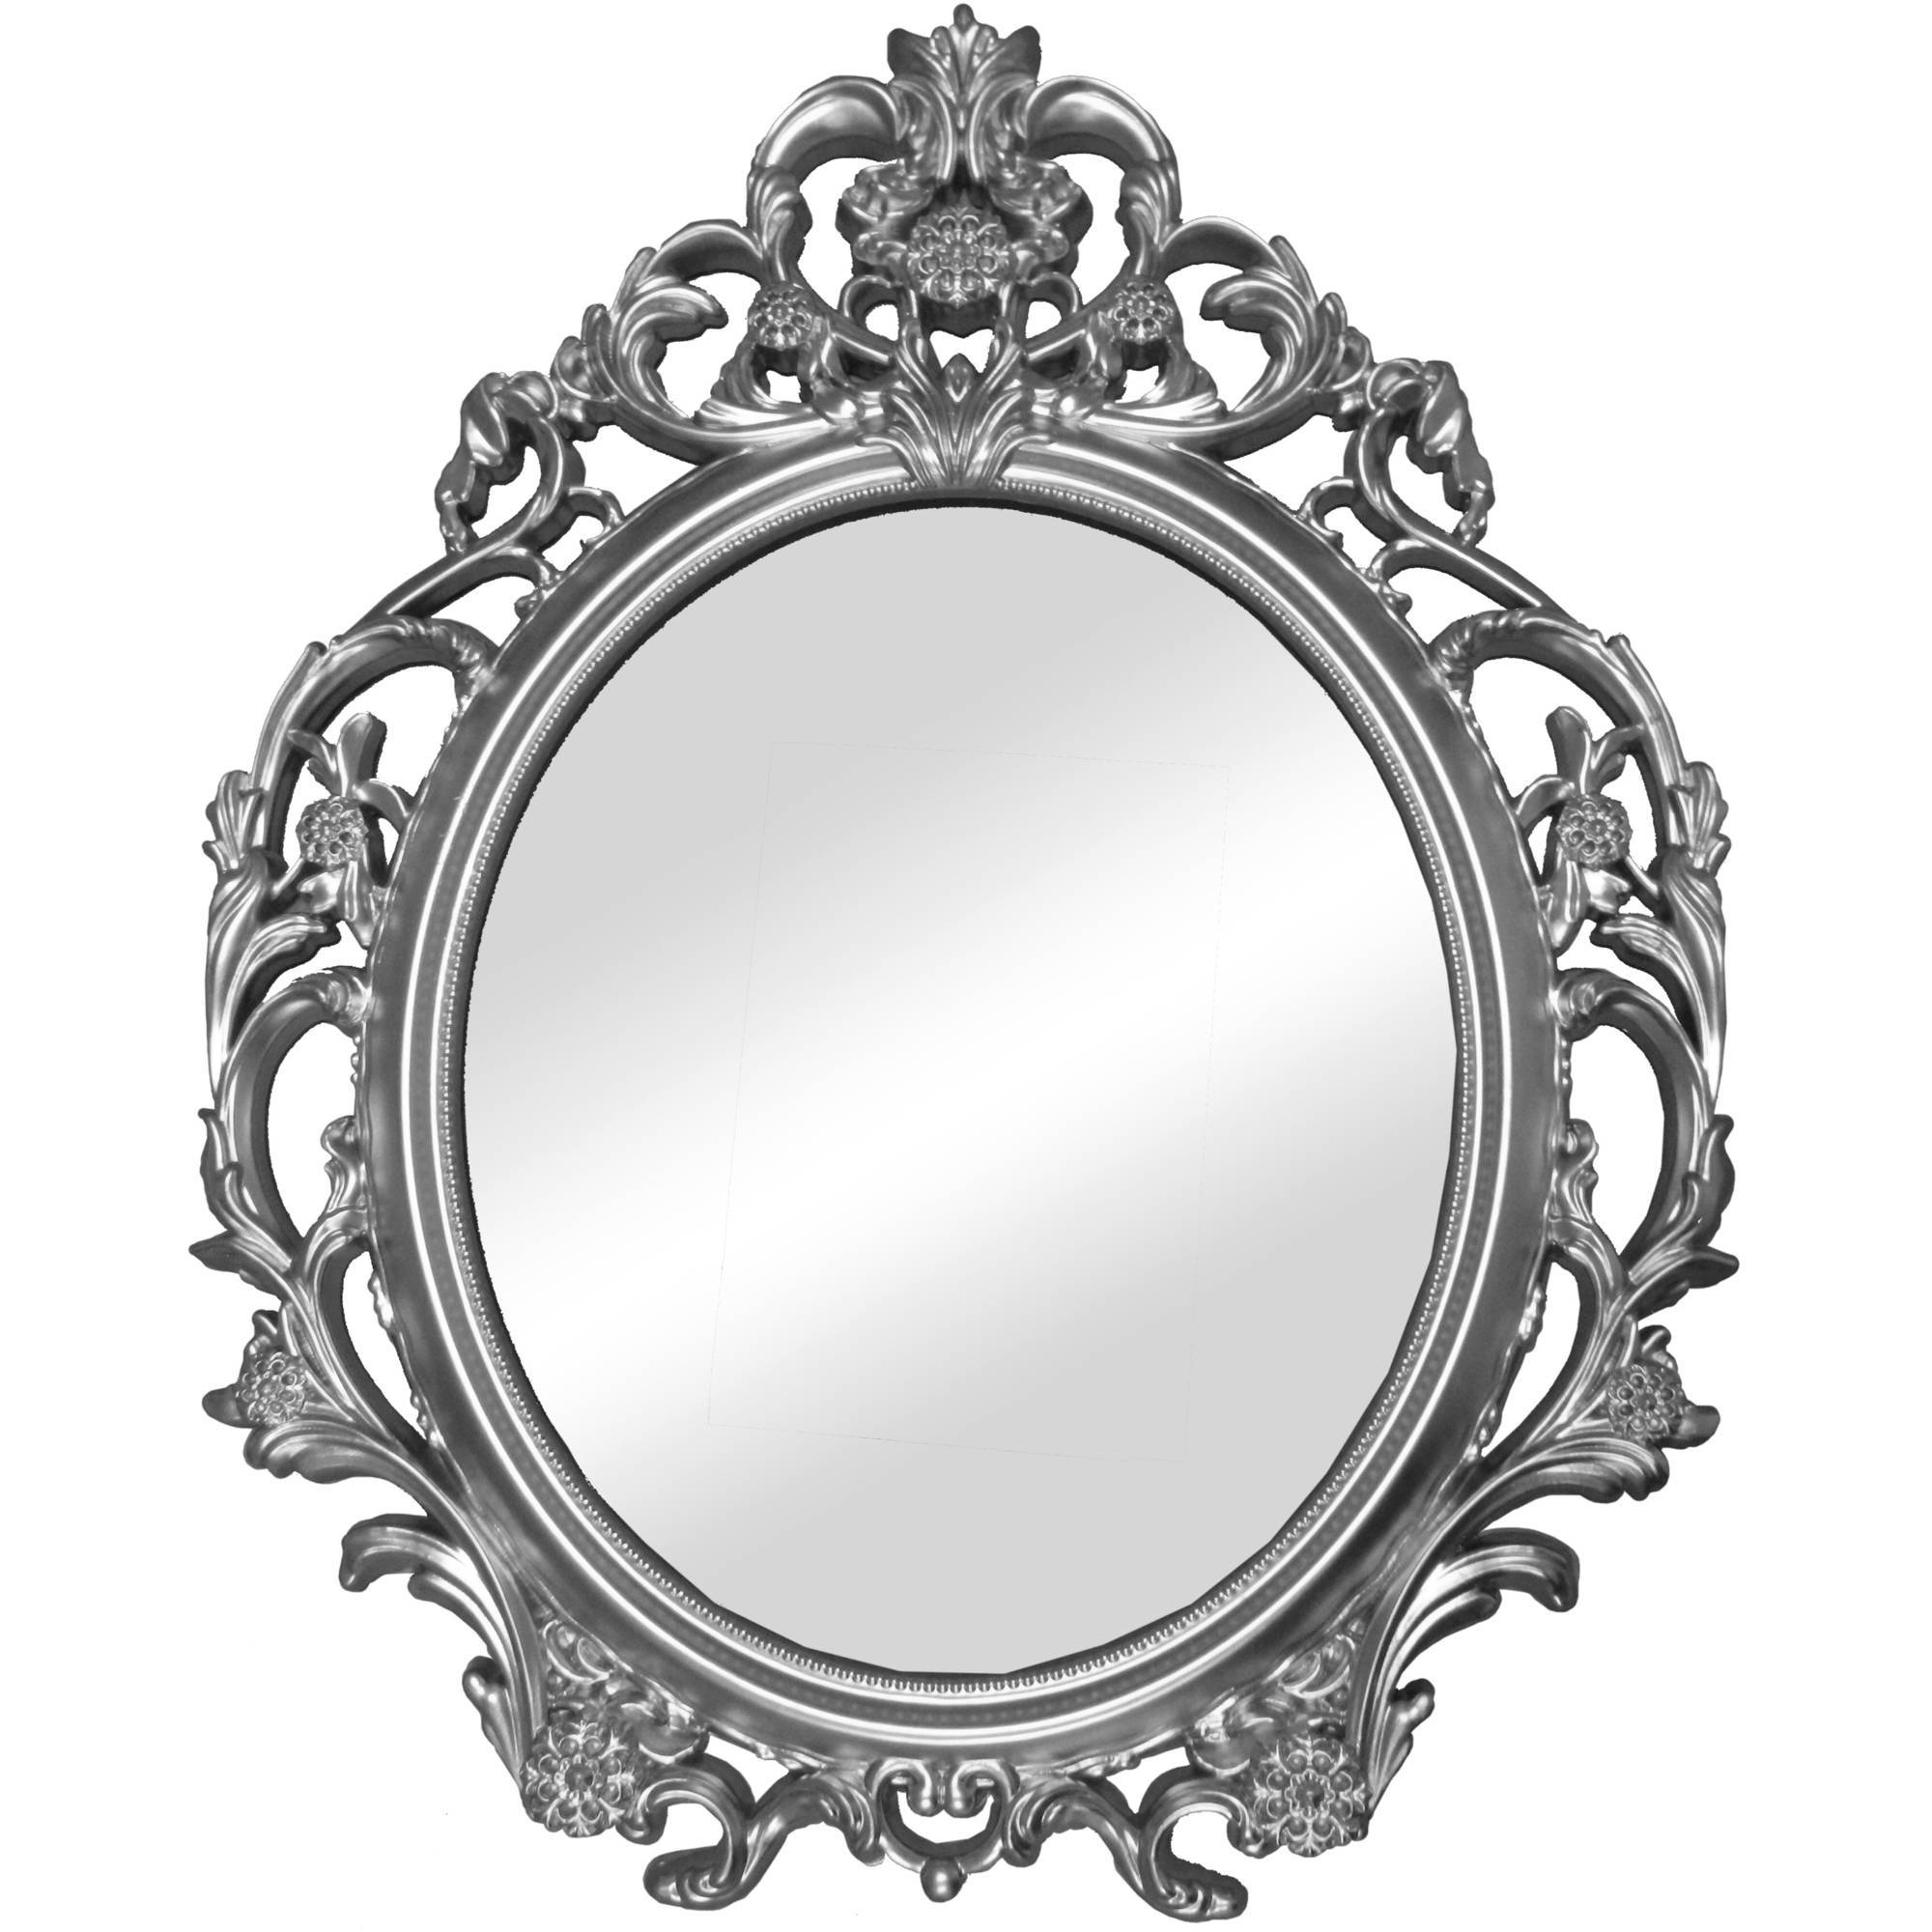 Better Homes And Gardens Baroque Wall Mirror - Walmart intended for White Baroque Wall Mirrors (Image 10 of 25)